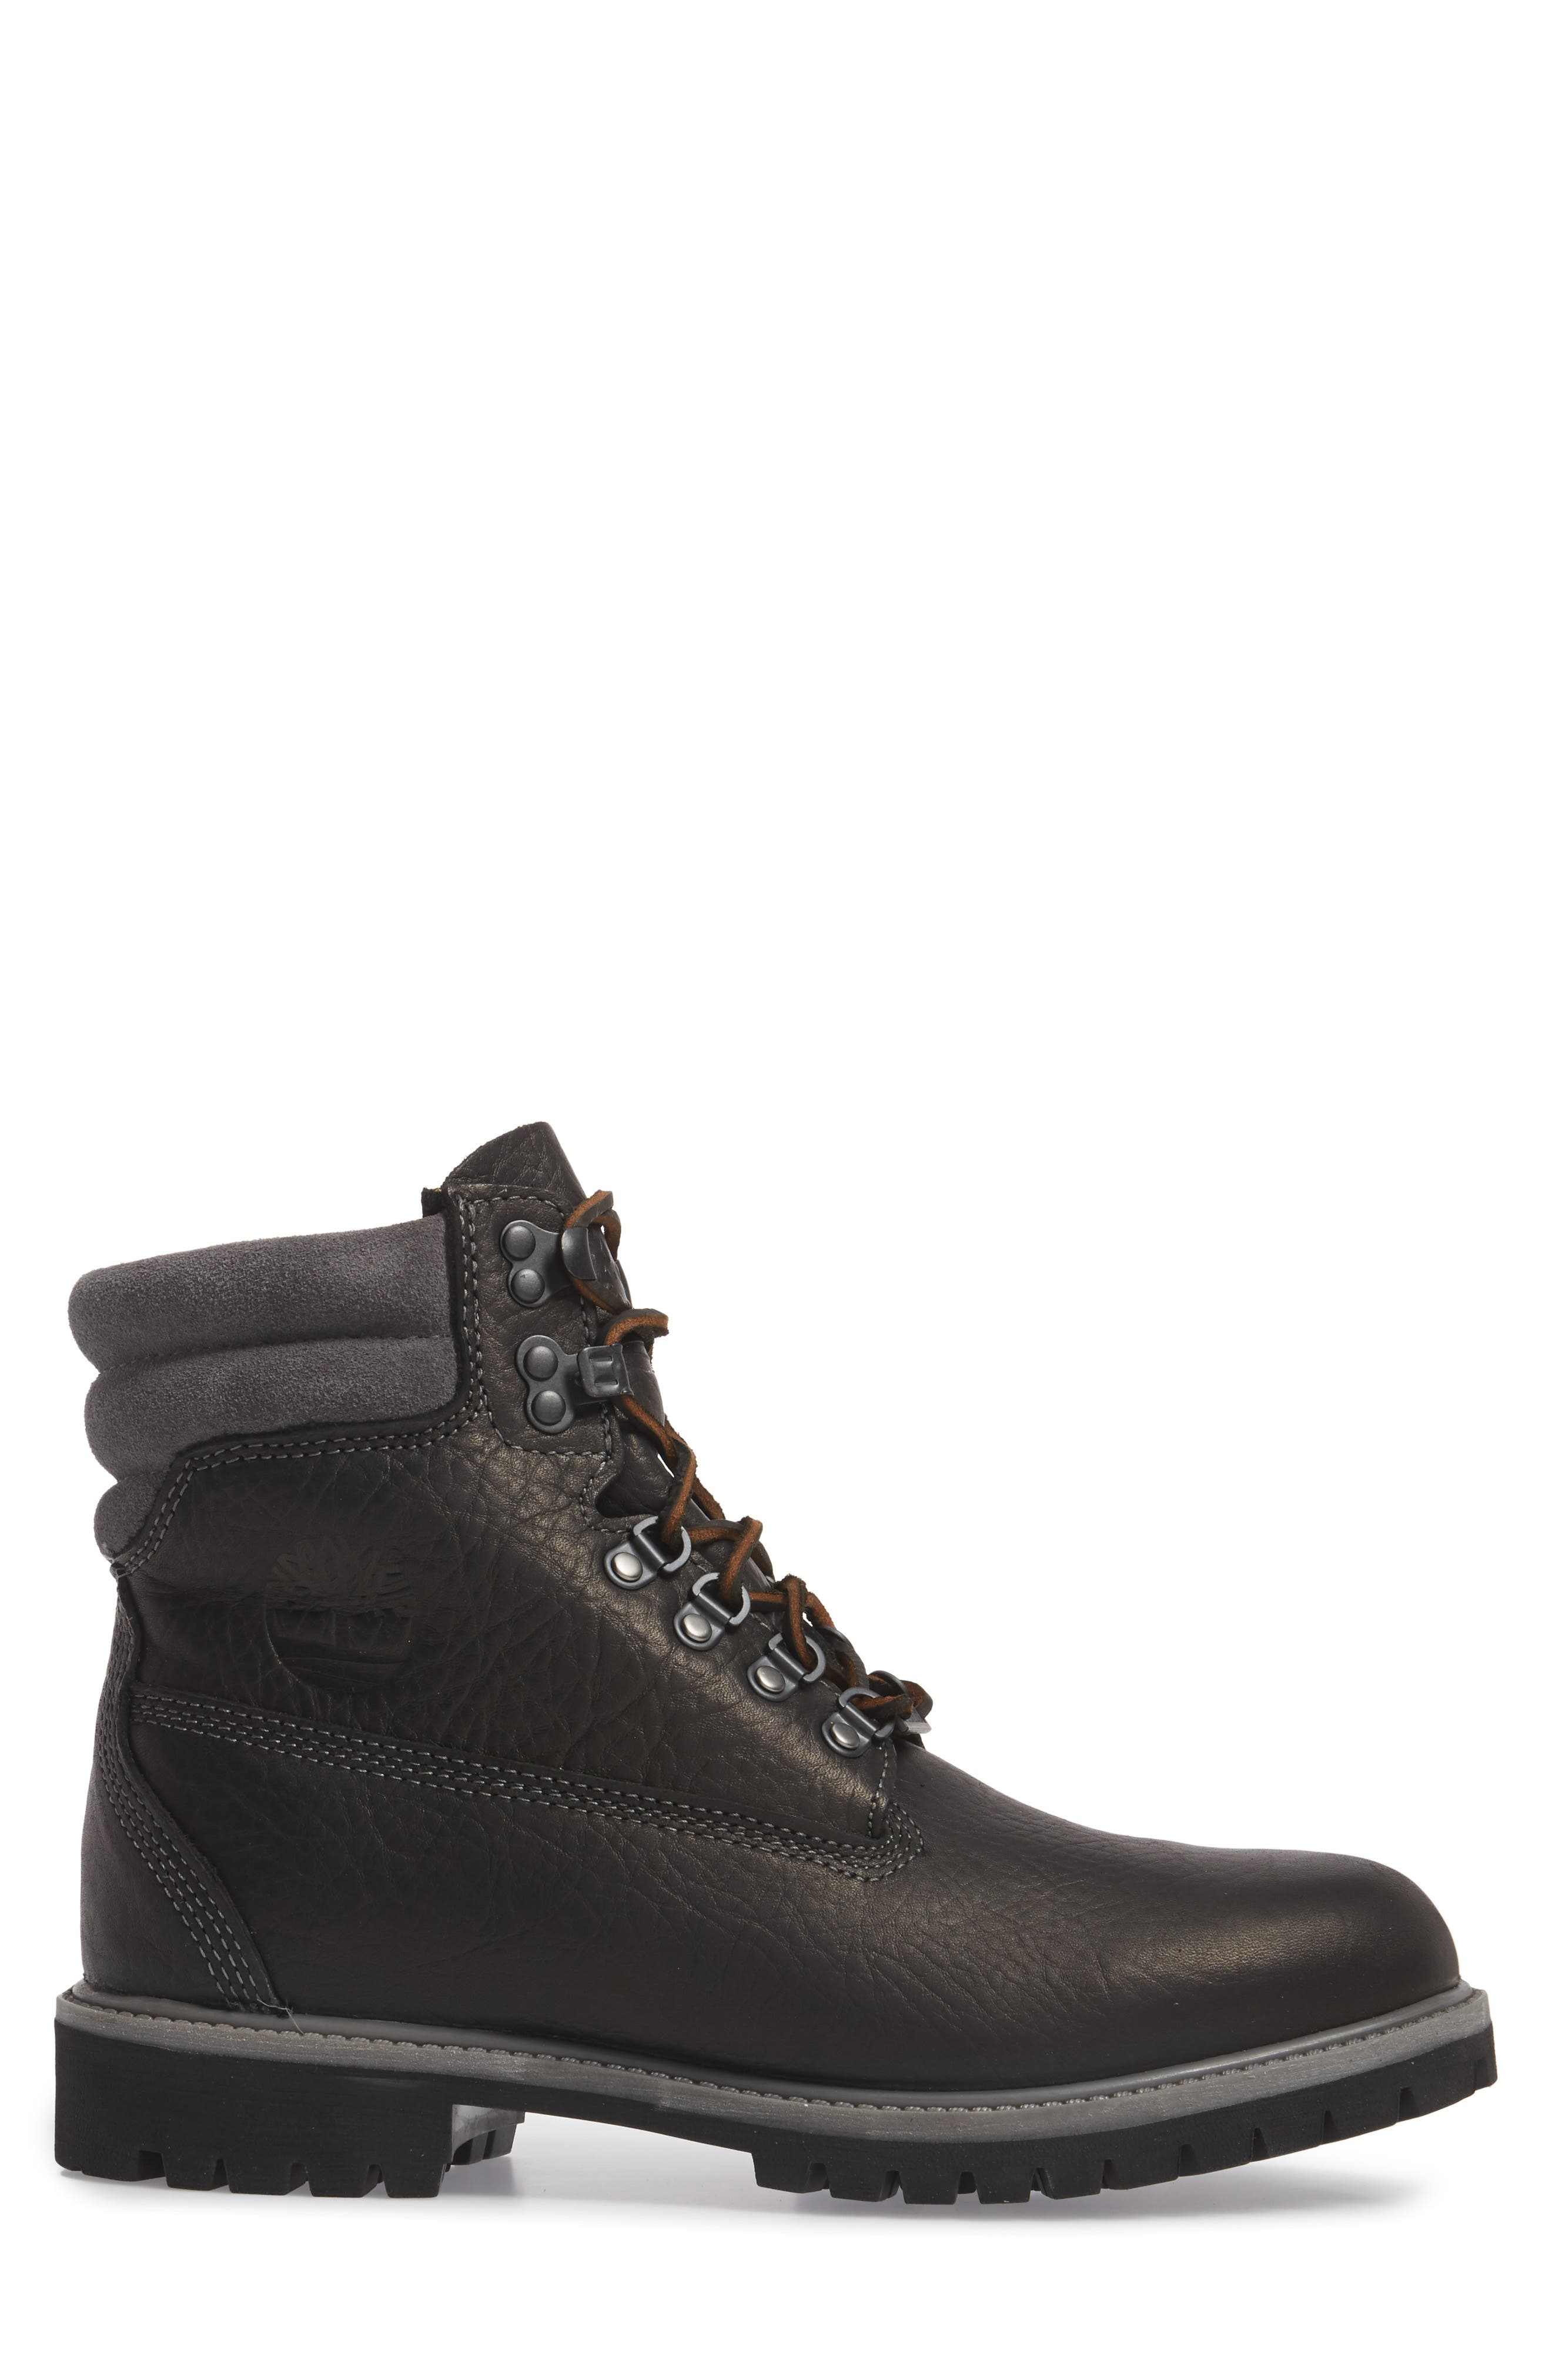 640 Below Plain Toe Boot,                             Alternate thumbnail 3, color,                             Black Highway Leather